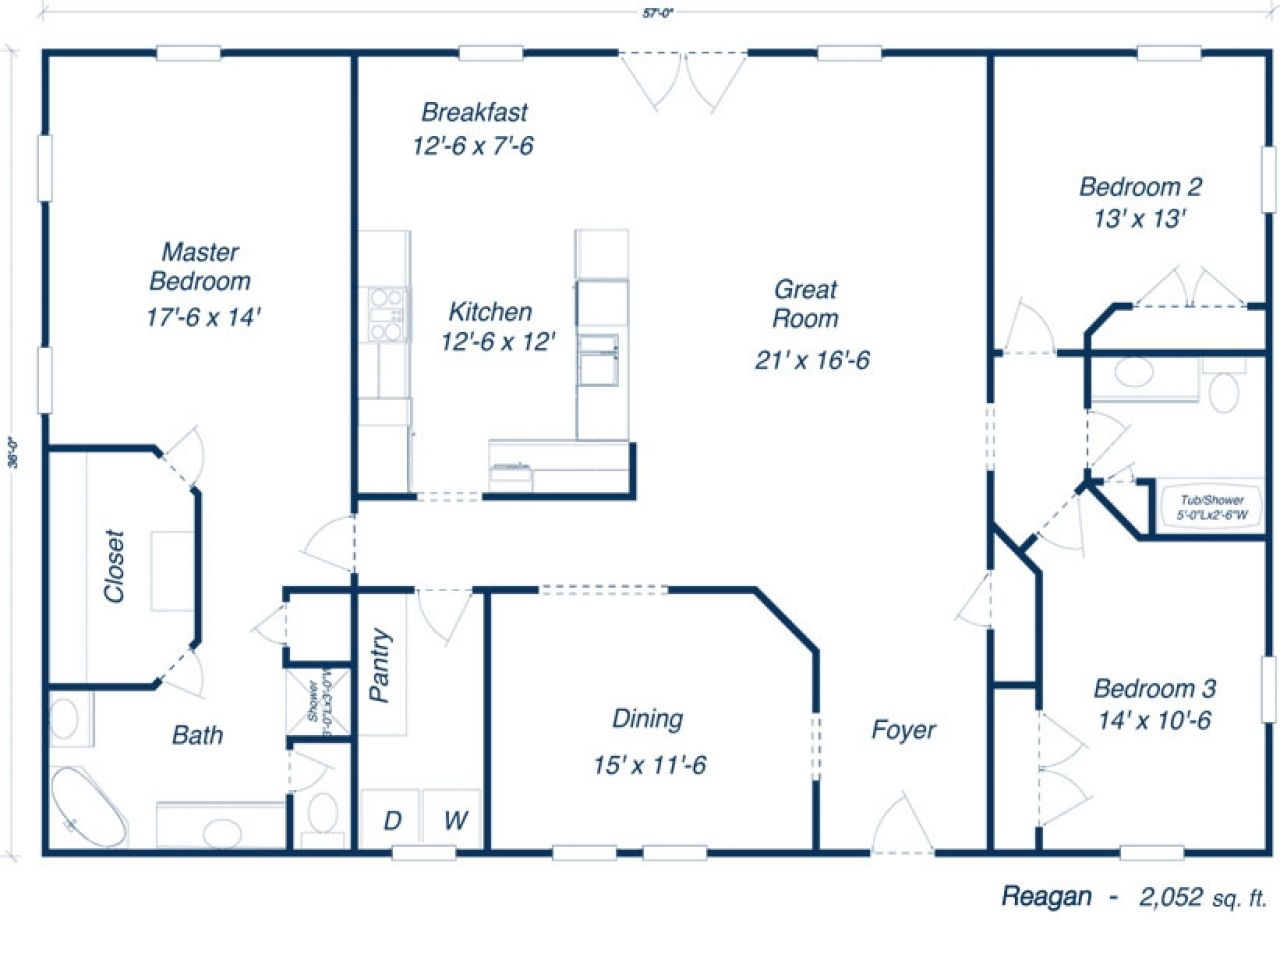 Plans furthermore 30 x 50 house floor plans besides for Home builder plans